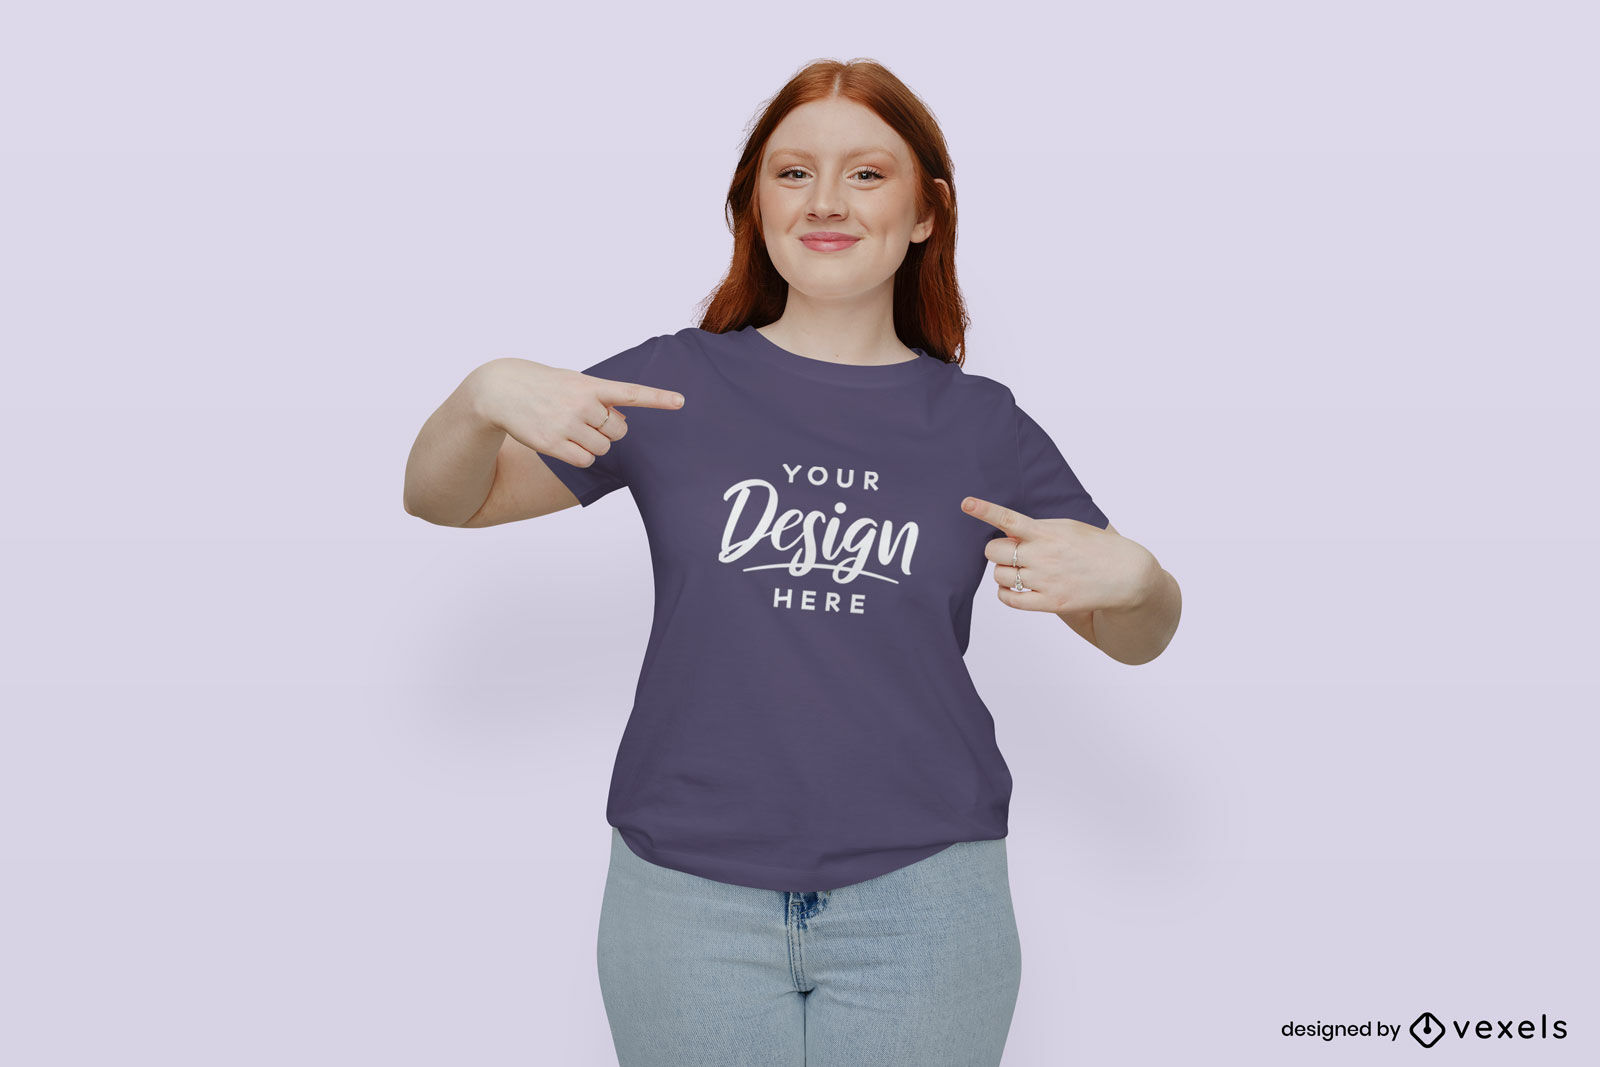 Girl with purple t-shirt mockup in flat background